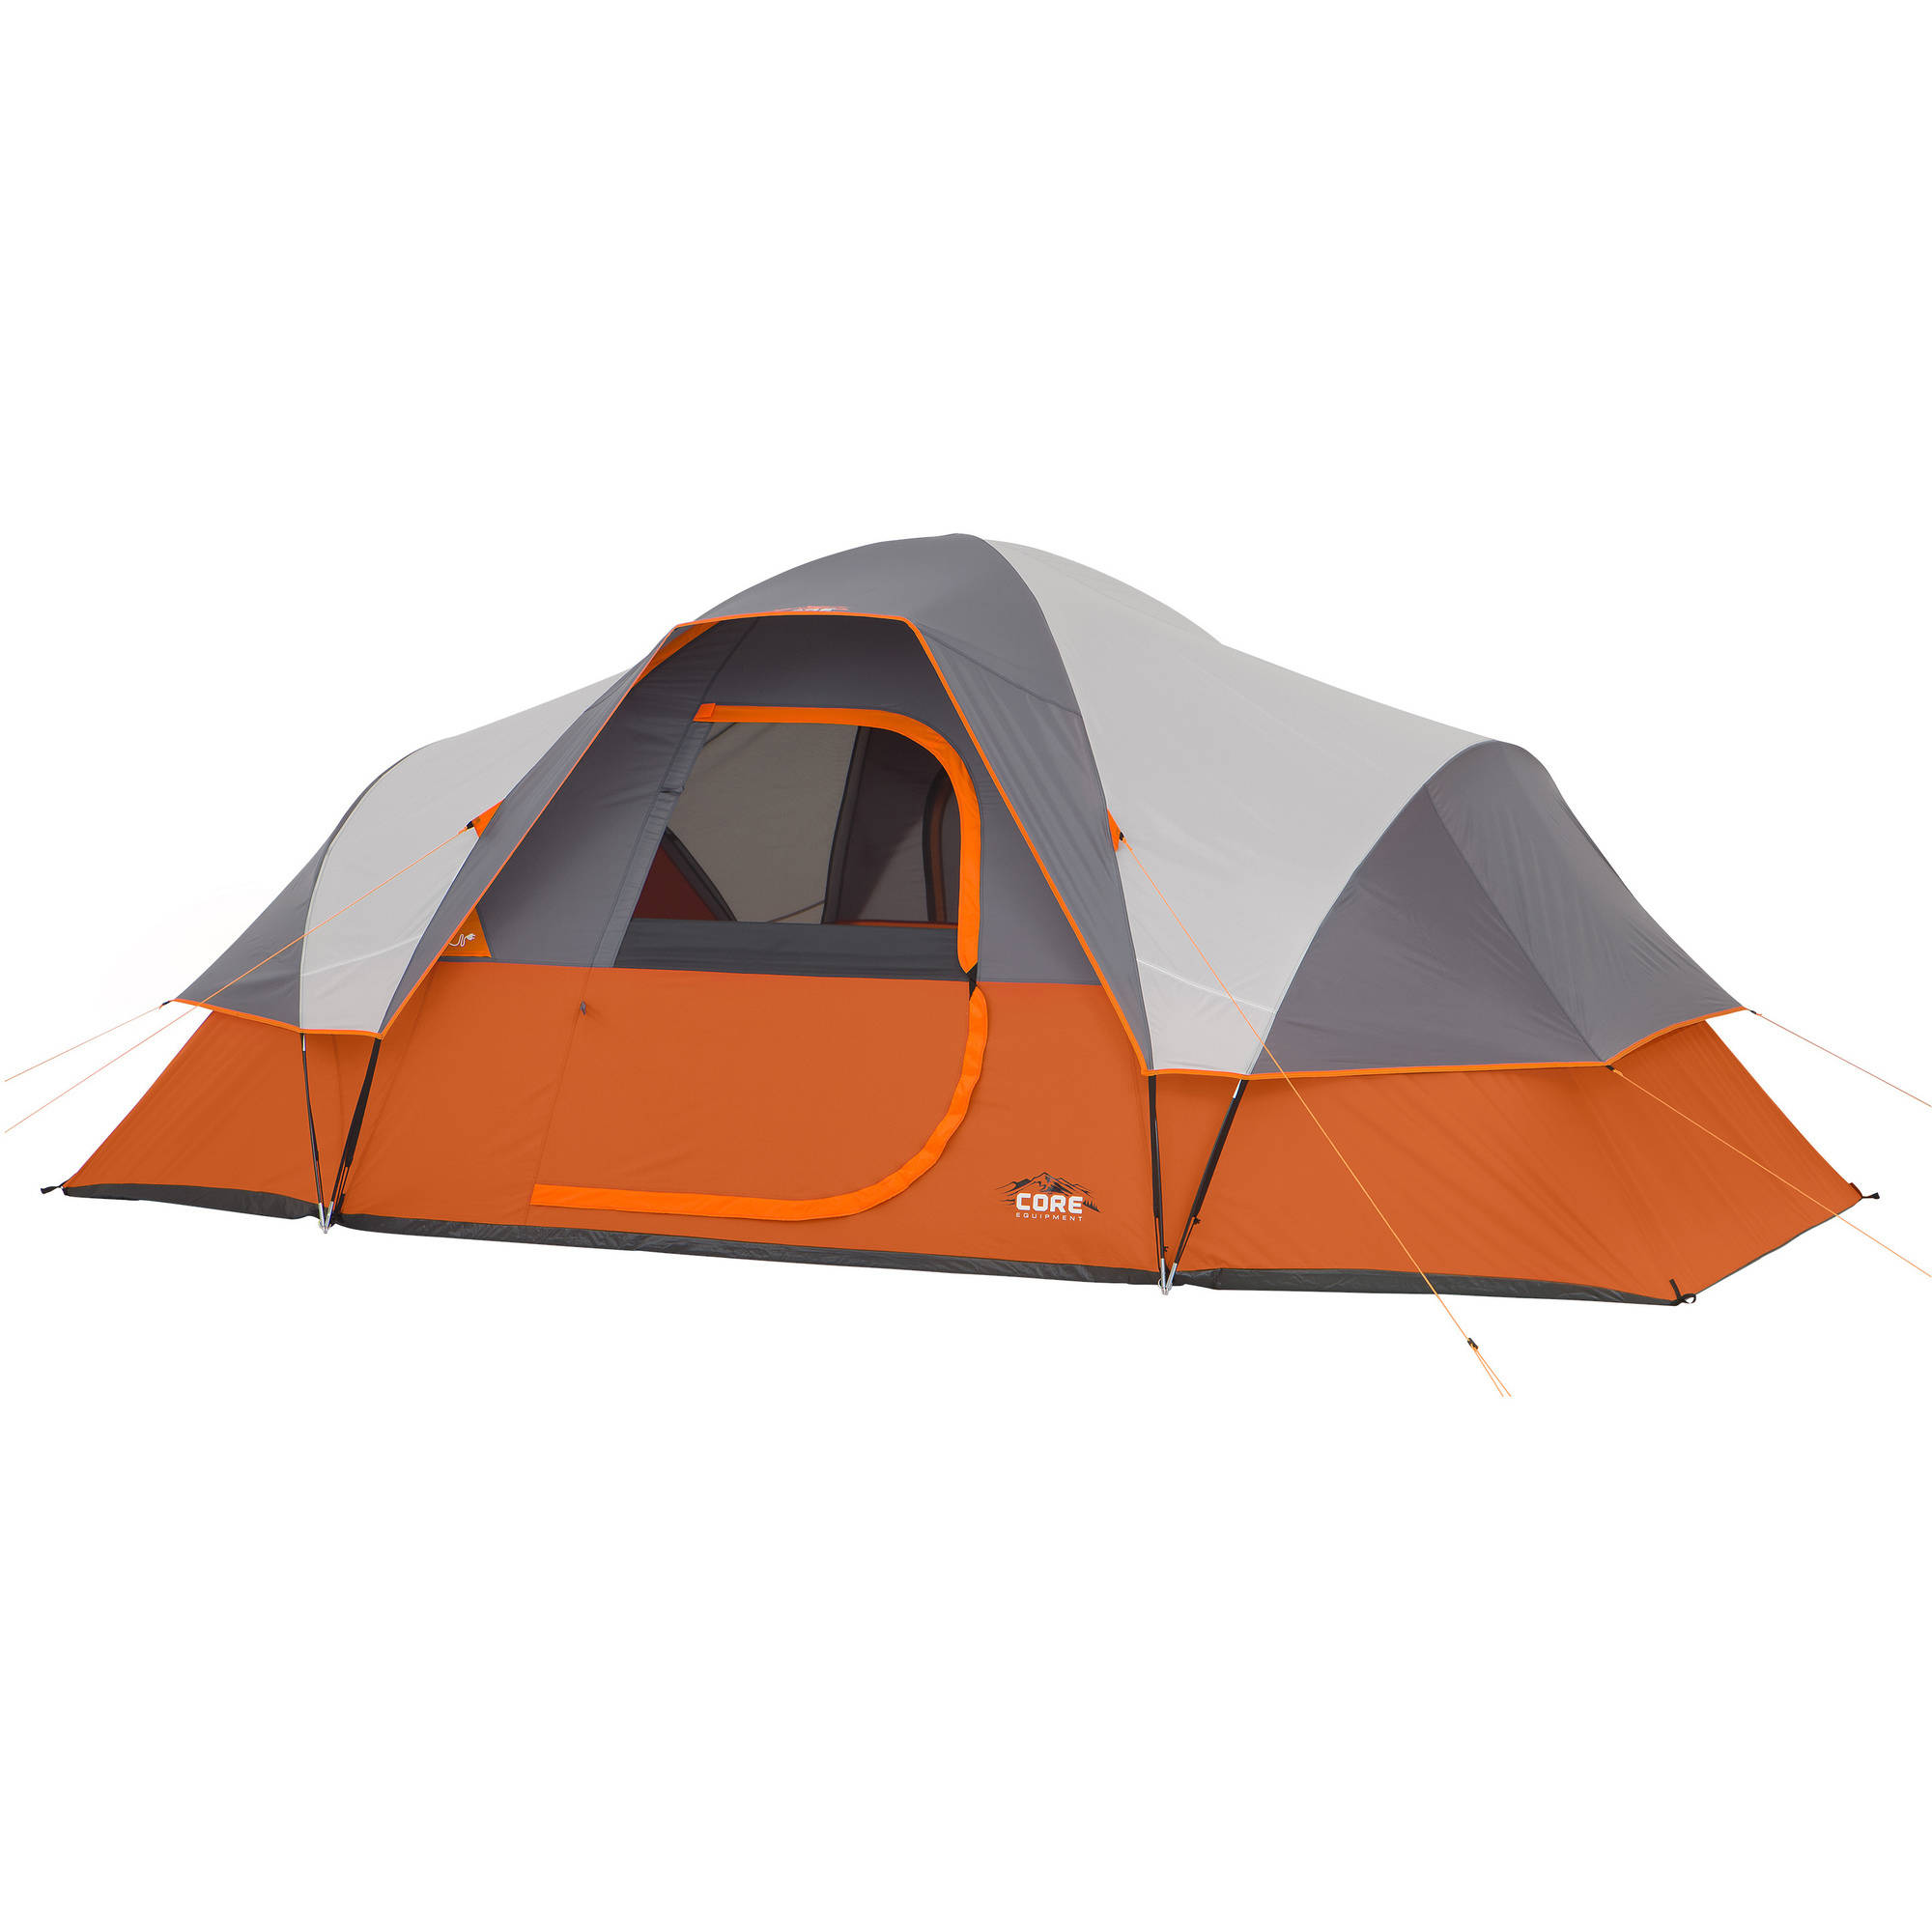 CORE Equipment 16' x 9' Modified Dome Tent, Sleeps 9 by Elevate LLC